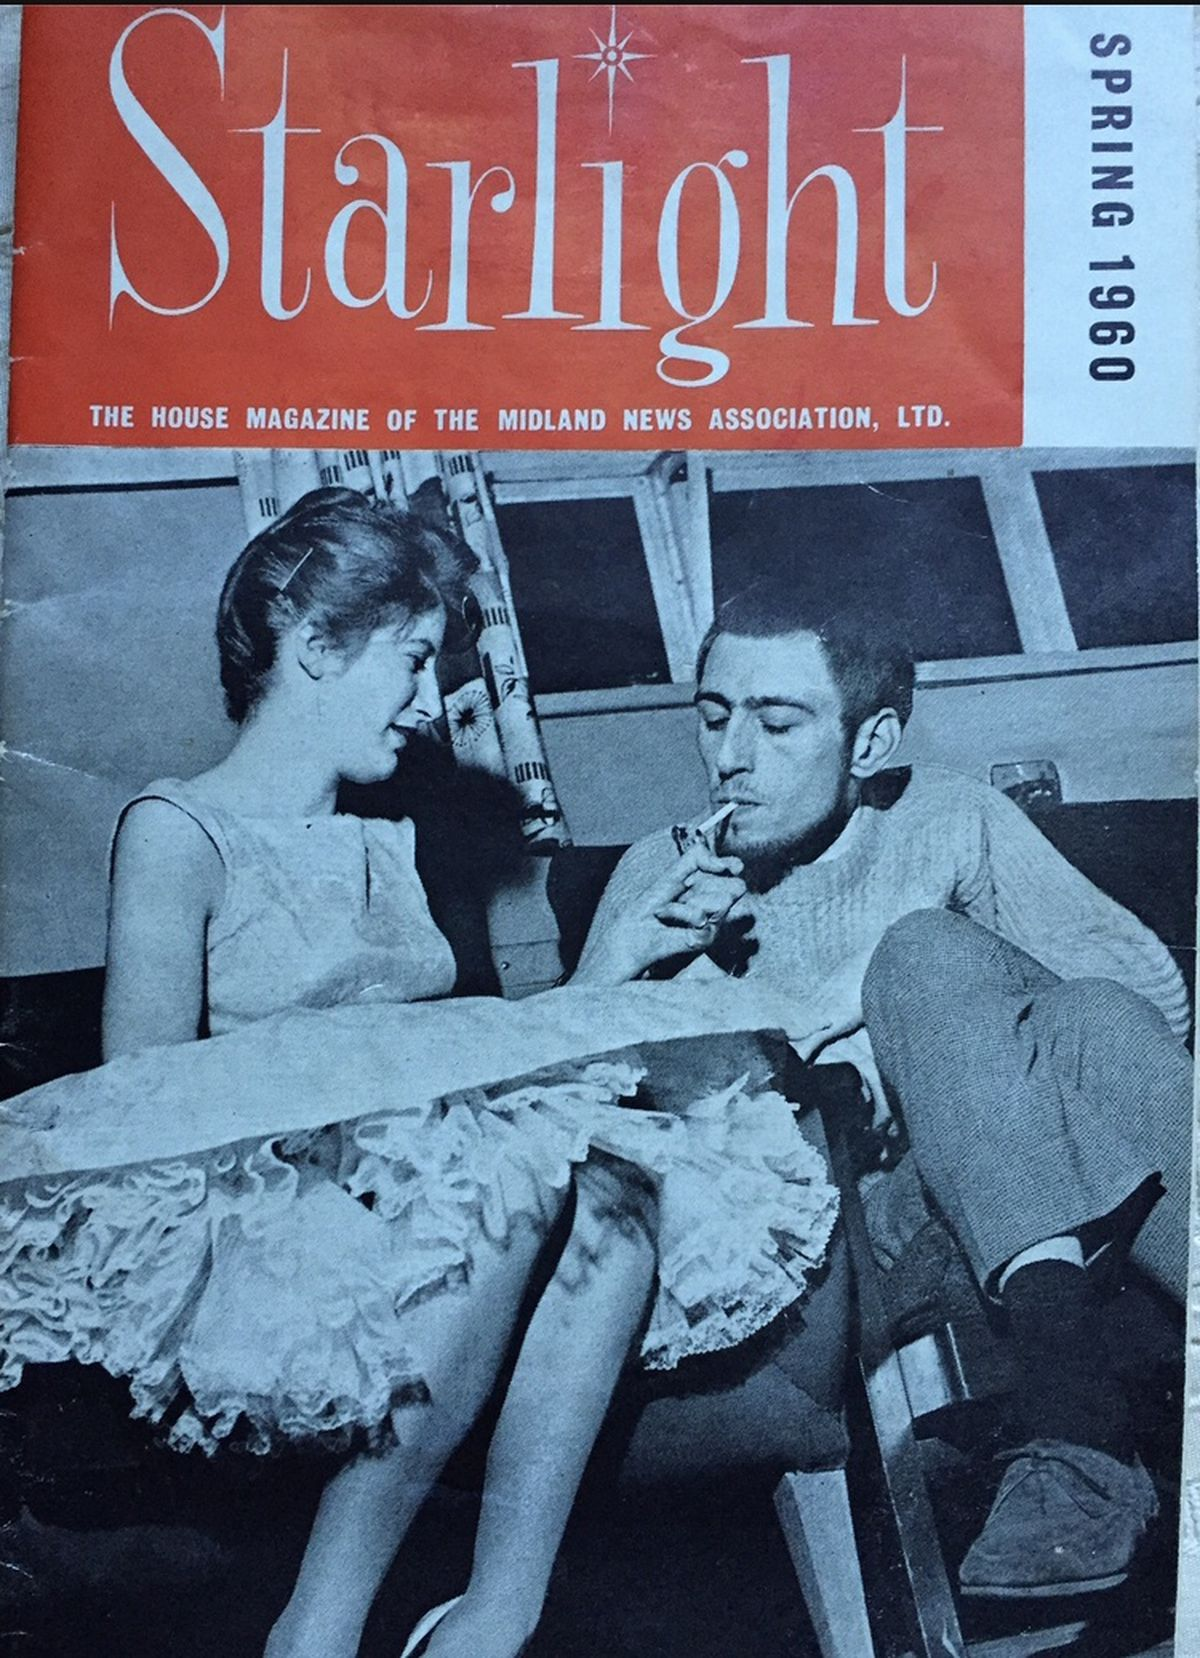 The pianist and comedian was featured on the front page of the Express and Star's magazine Starlight in 1960 (Image by Anna Keirle)